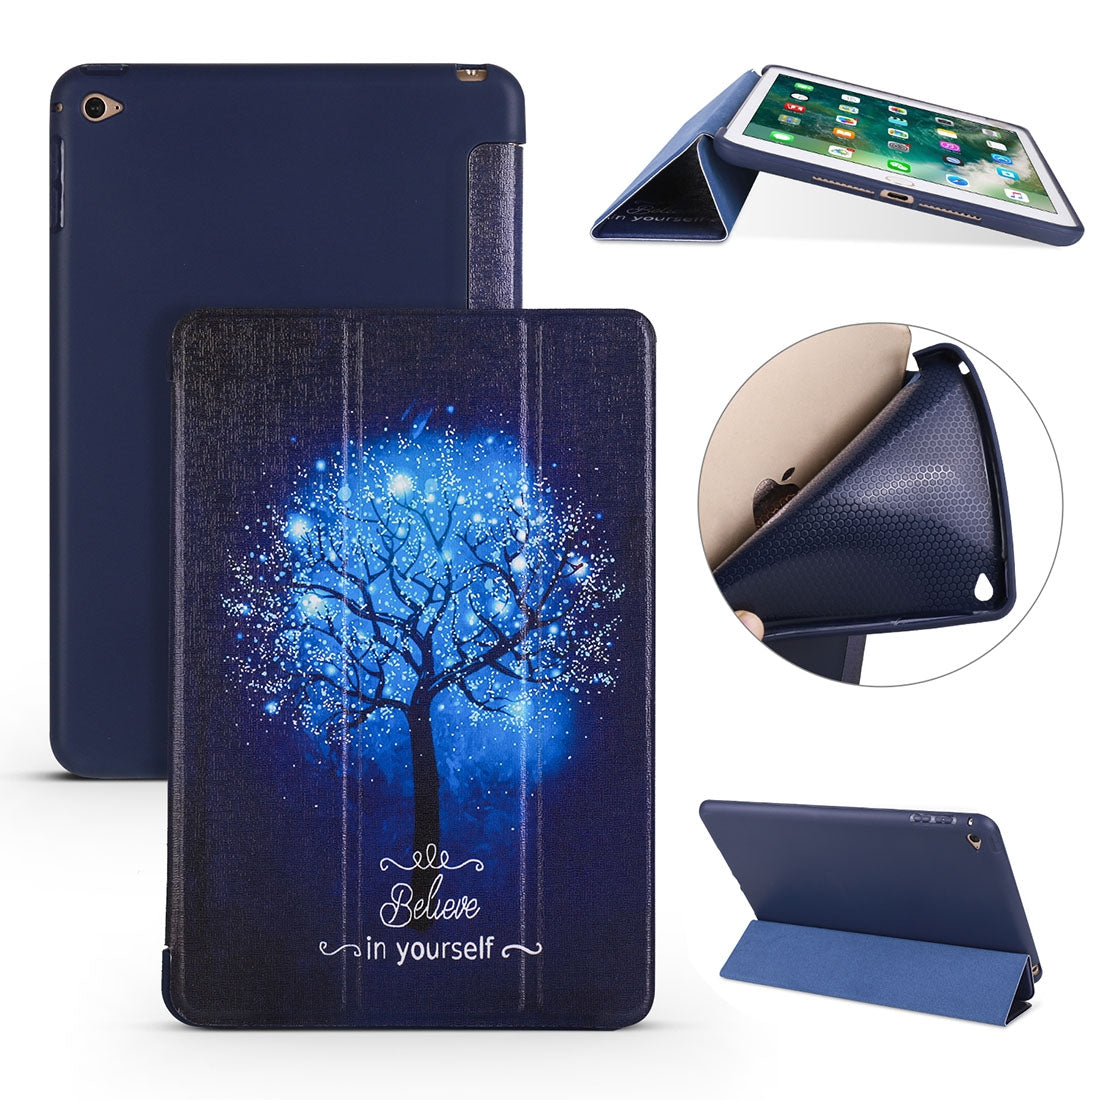 Blue Tree Pattern Horizontal Flip PU Leather Case for iPad mini 4, with Three-folding Holder & Honeycomb TPU Cover